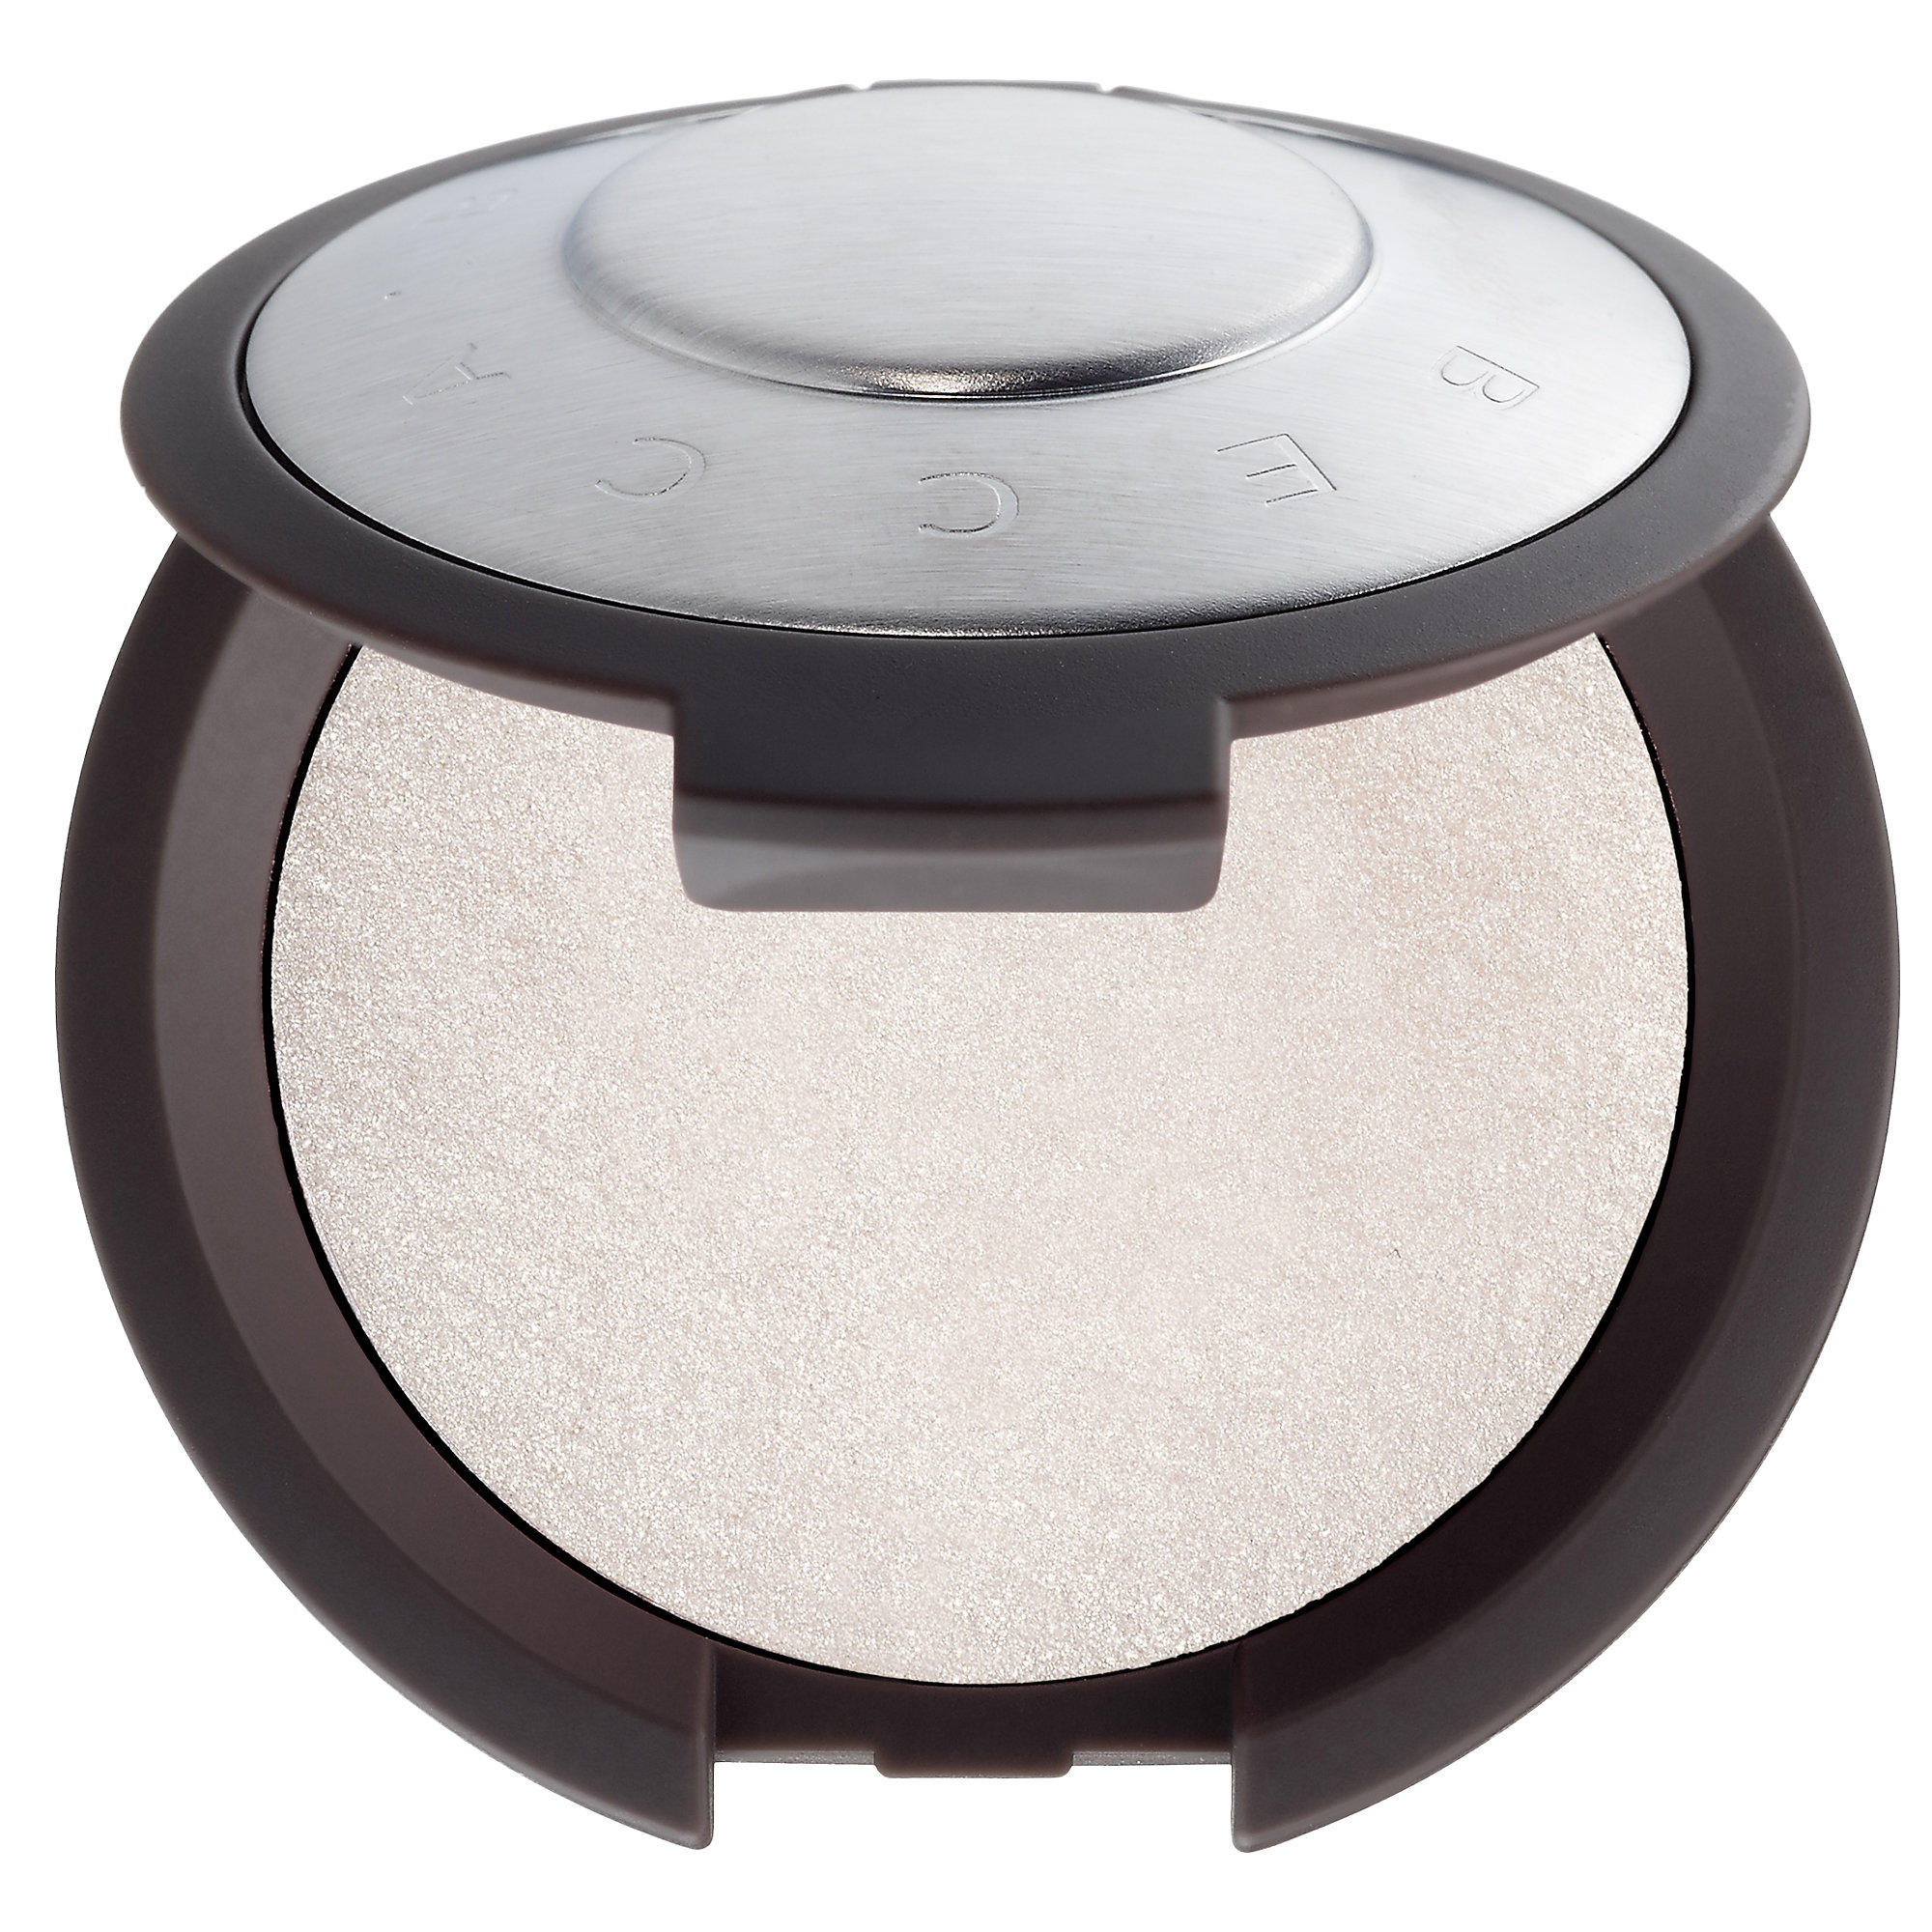 New Release Becca lauched Shimmering Skin Perfector Pressed New Shade-Pearl